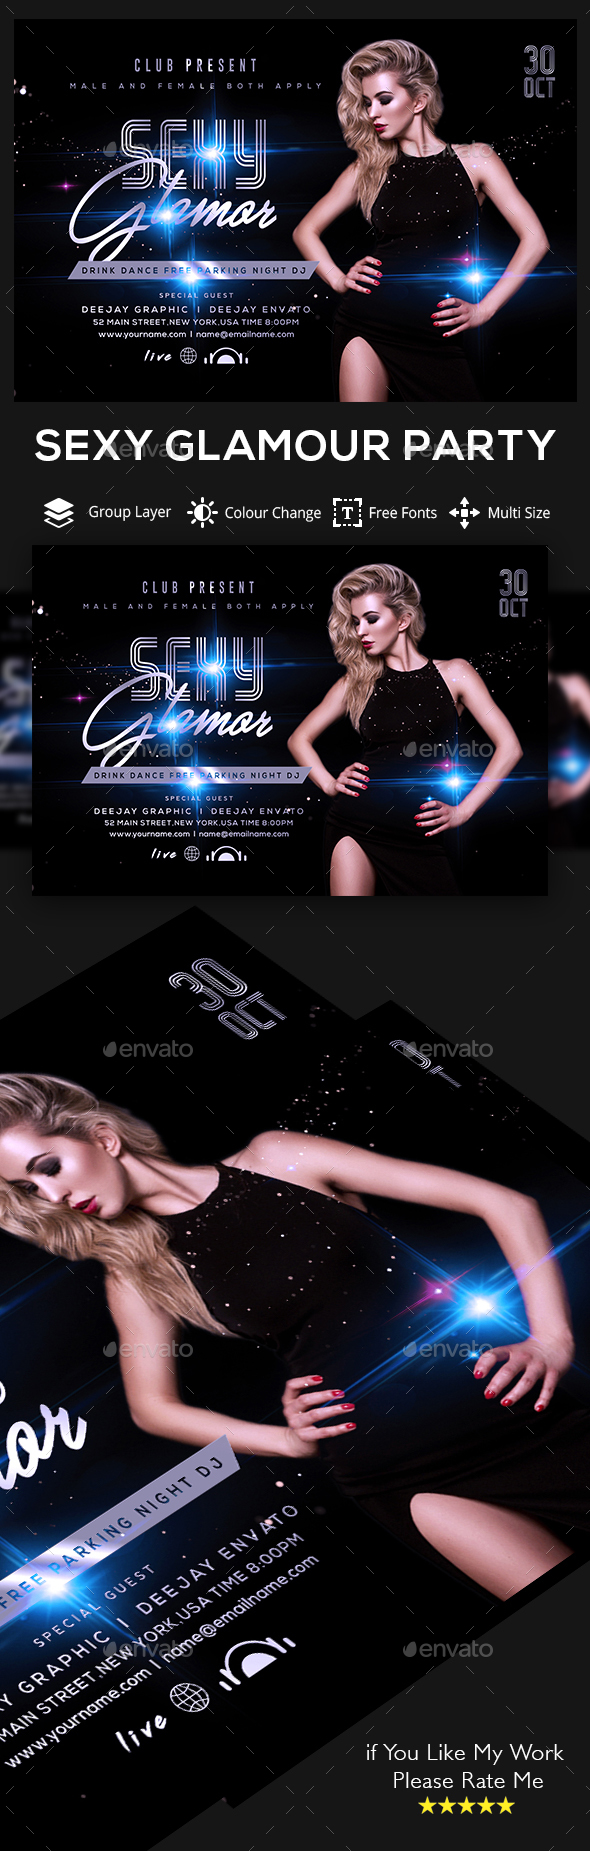 Exclusive Sexy Glamour Party Flyer Template - Clubs & Parties Events